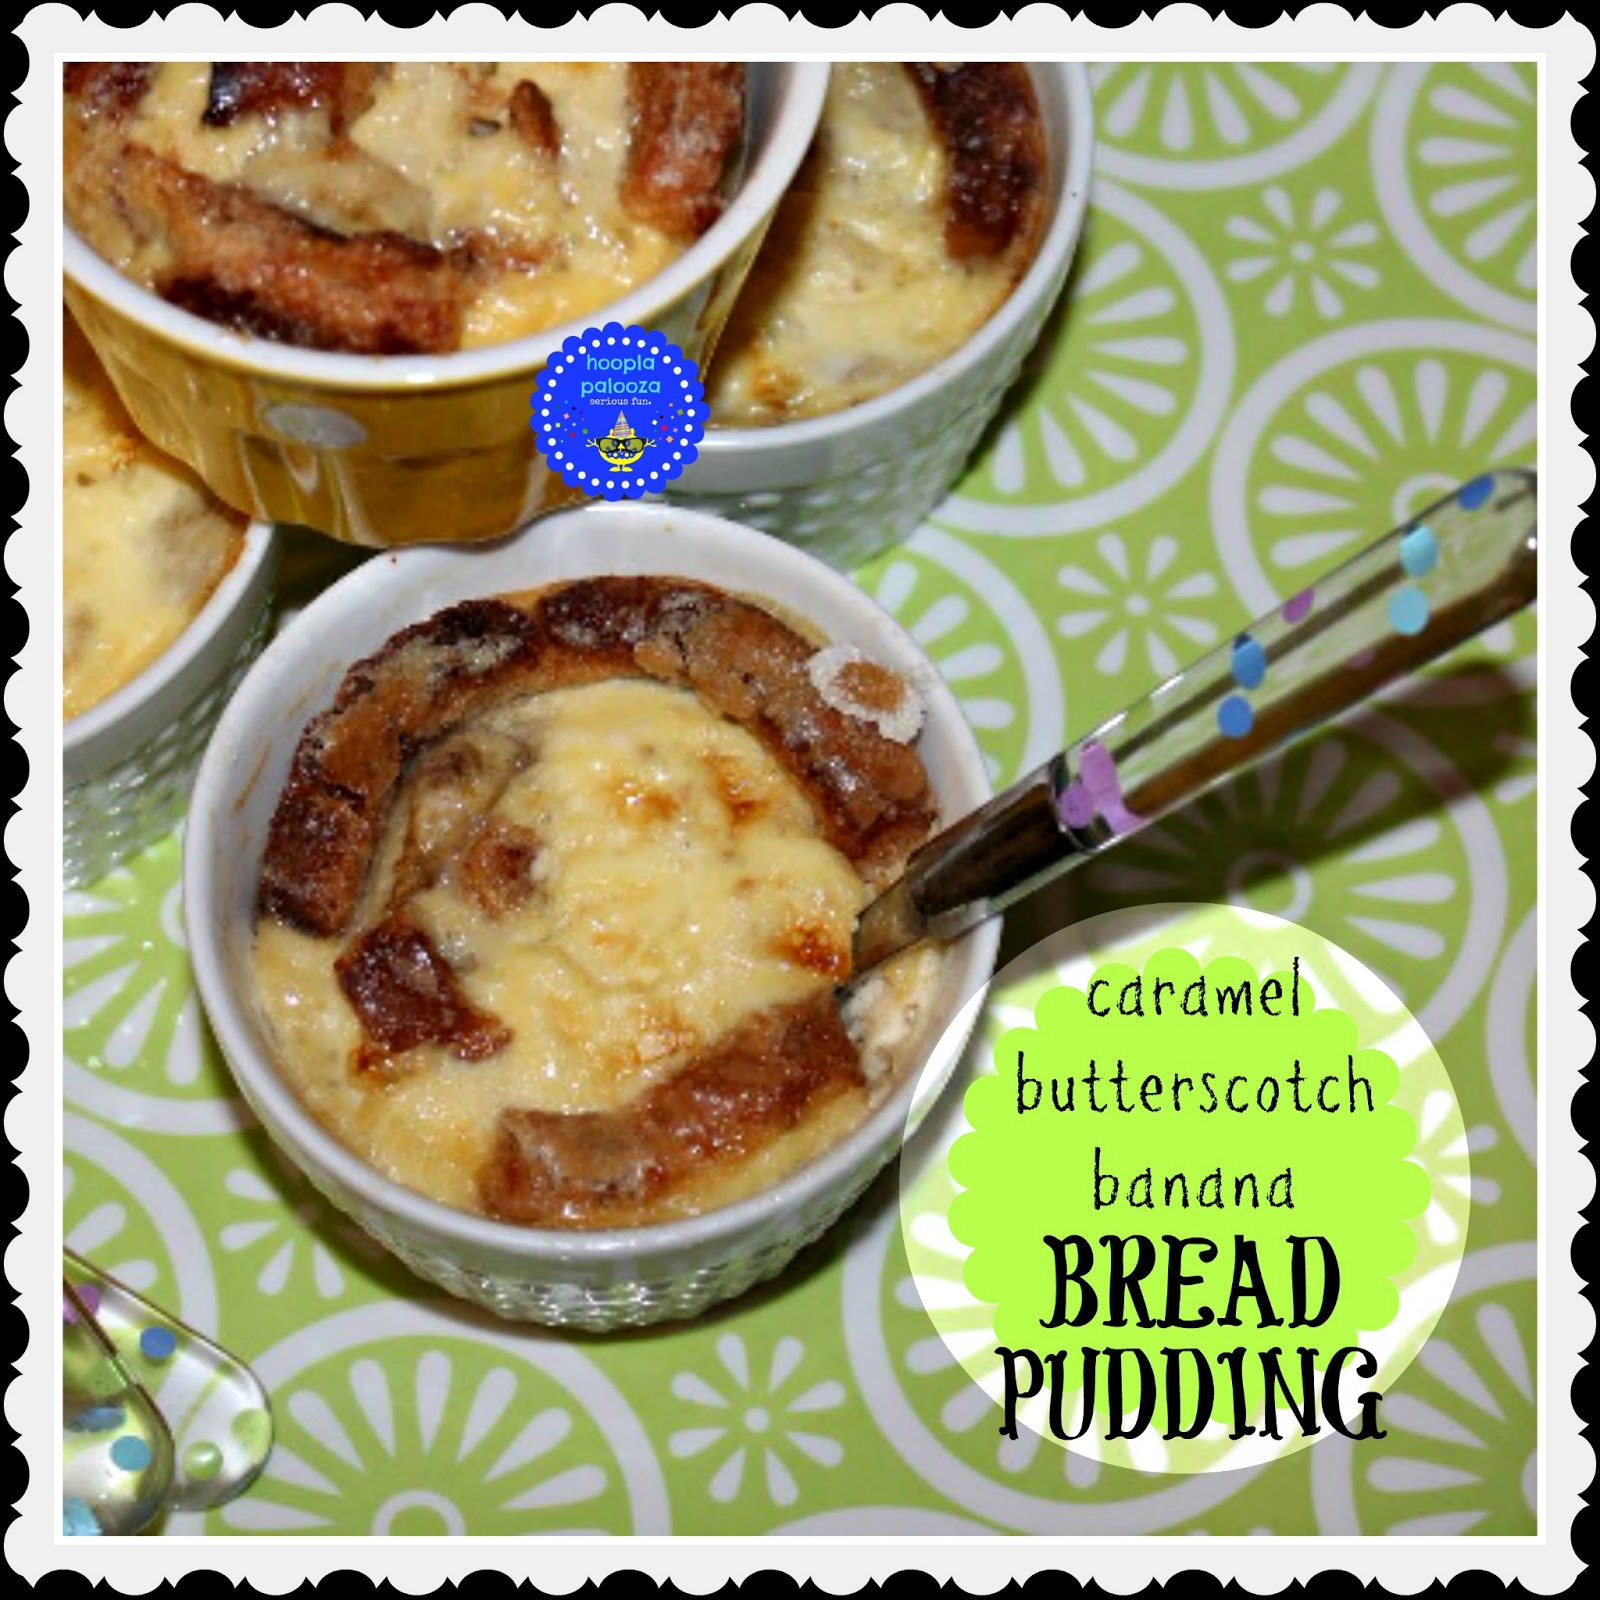 hoopla palooza: caramel butterscotch banana bread pudding